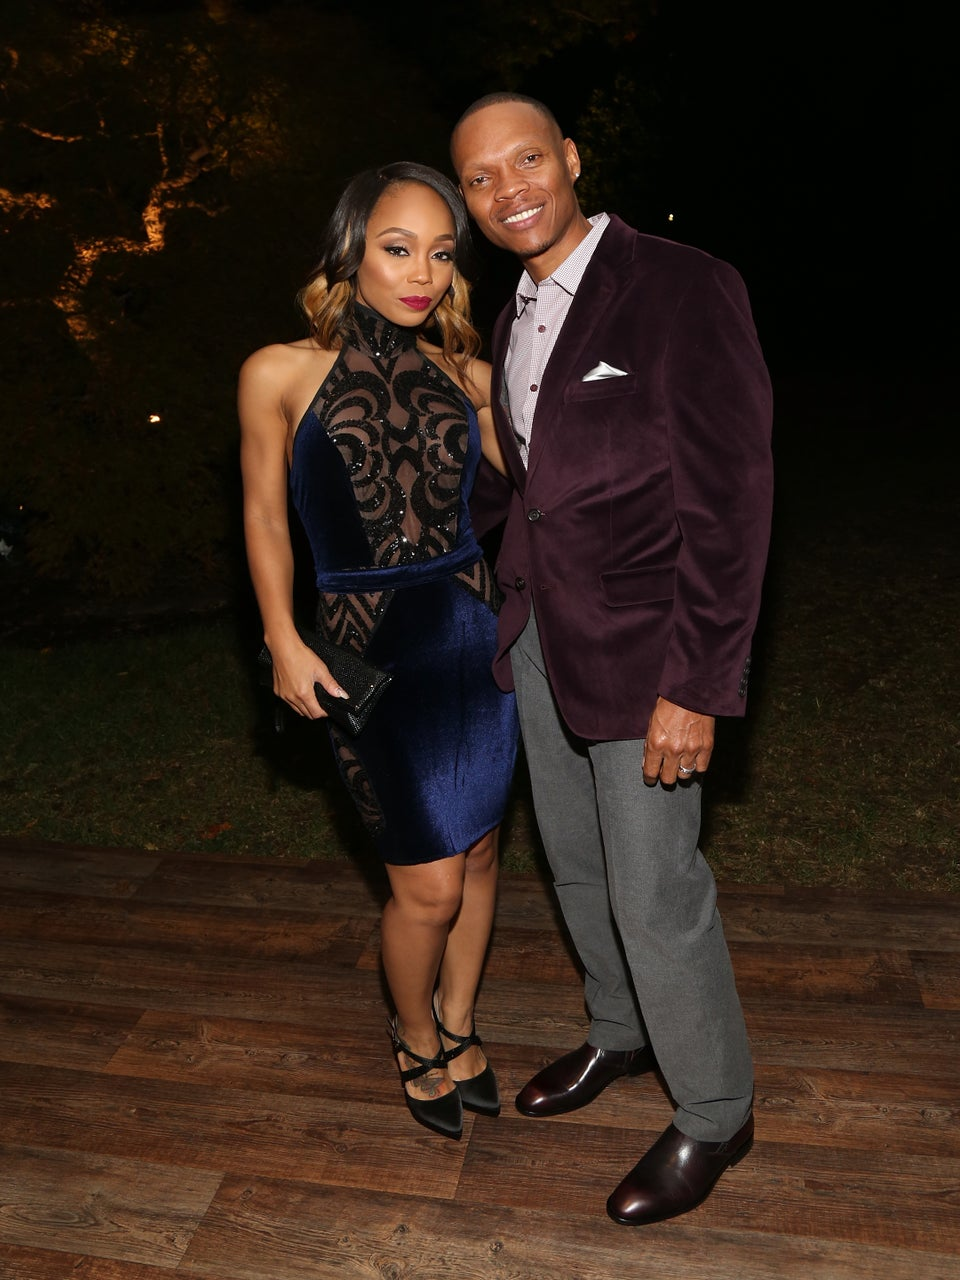 Can We Learn About Open Marriages From Shamari and Ronnie DeVoe's Experience?